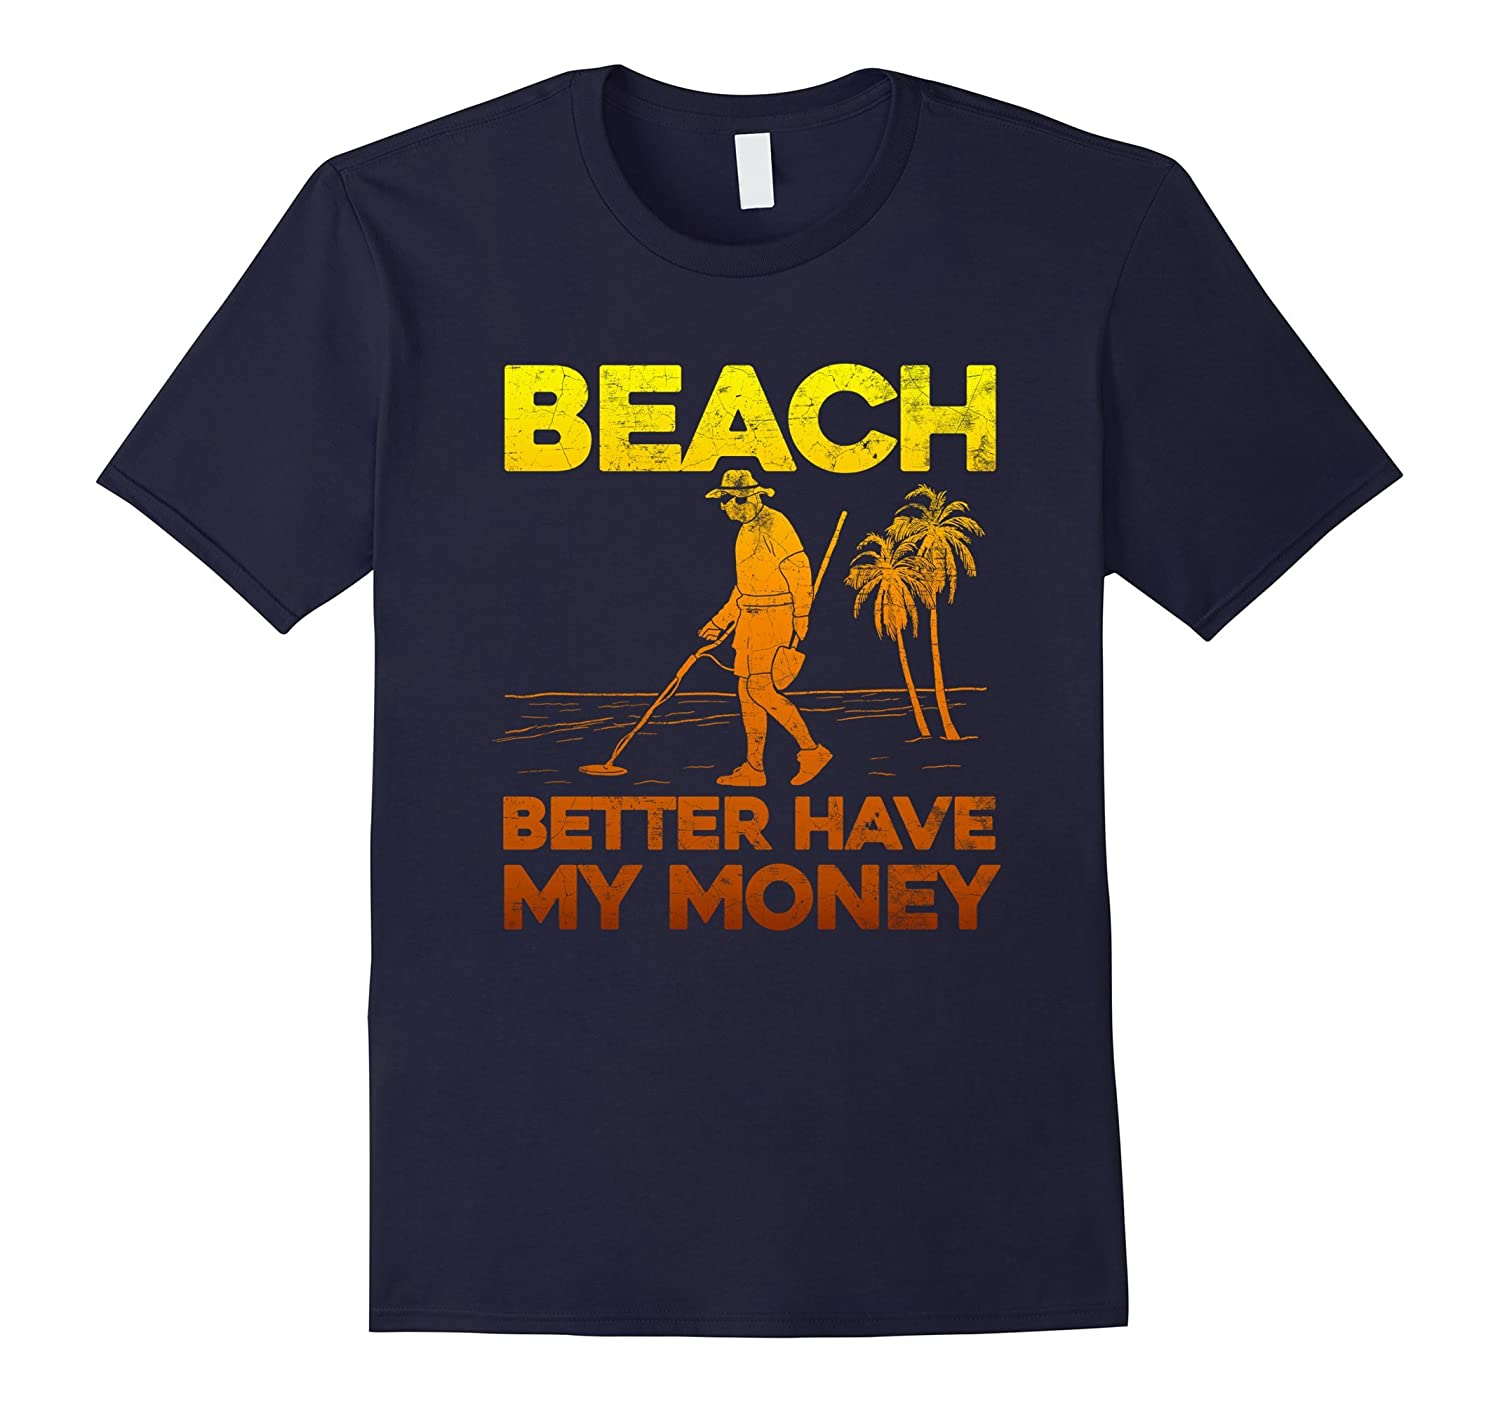 Beach Better Have My Money Shirt Funny Metal Detecting-BN